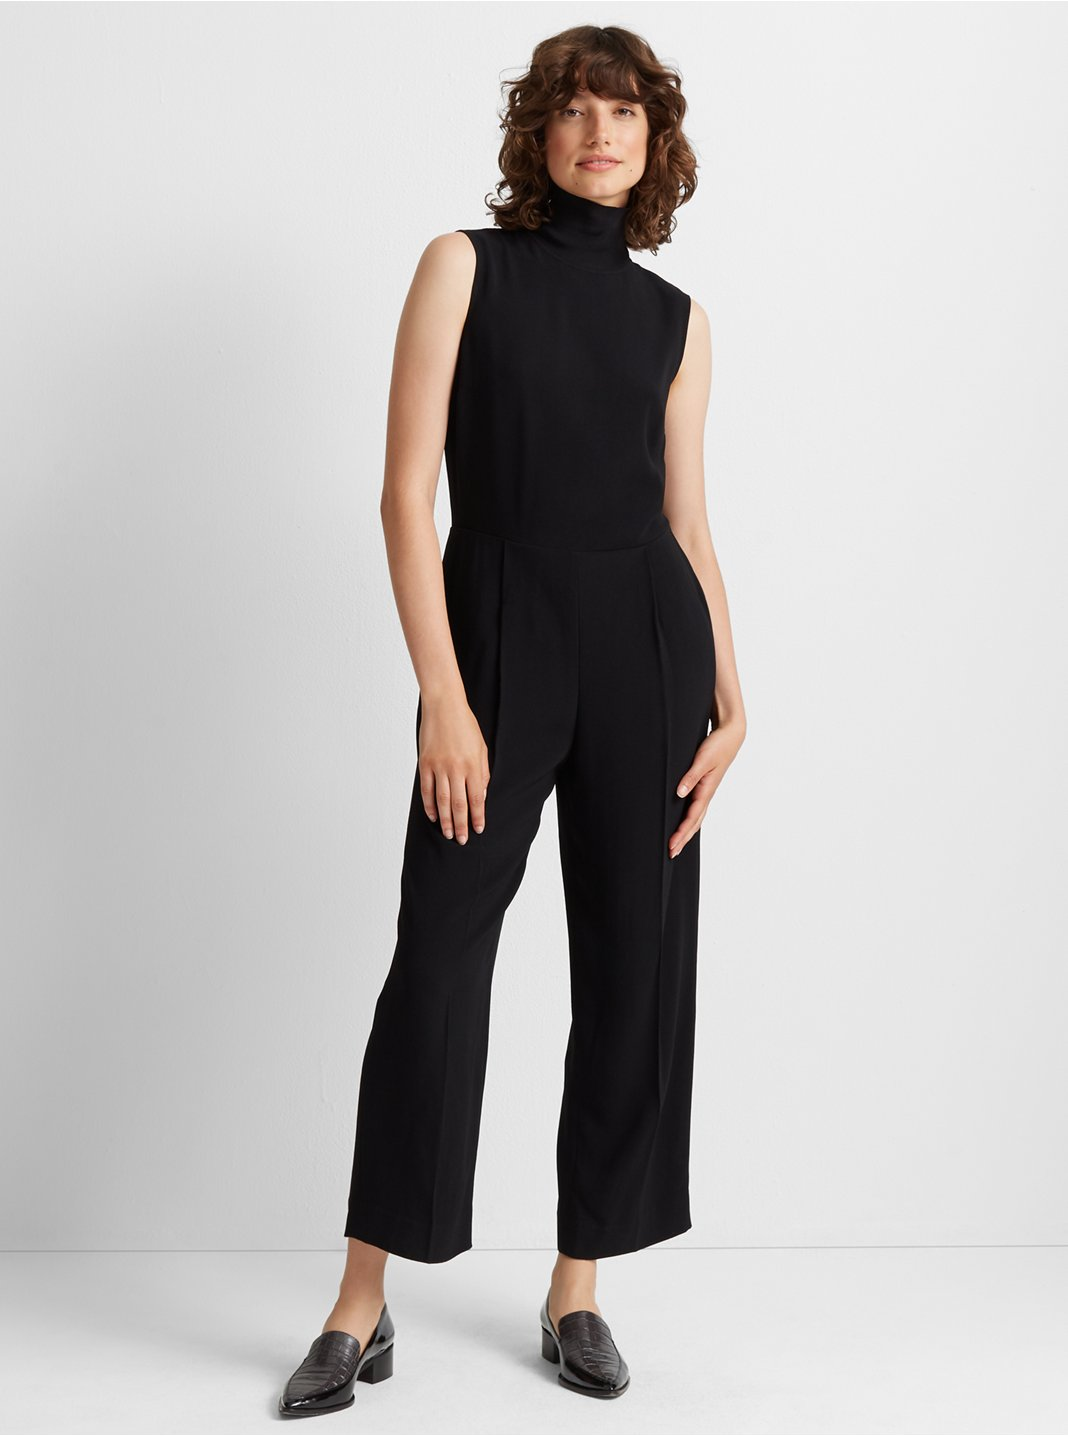 4f6698cb9db Women's Jumpsuits and Rompers | Club Monaco